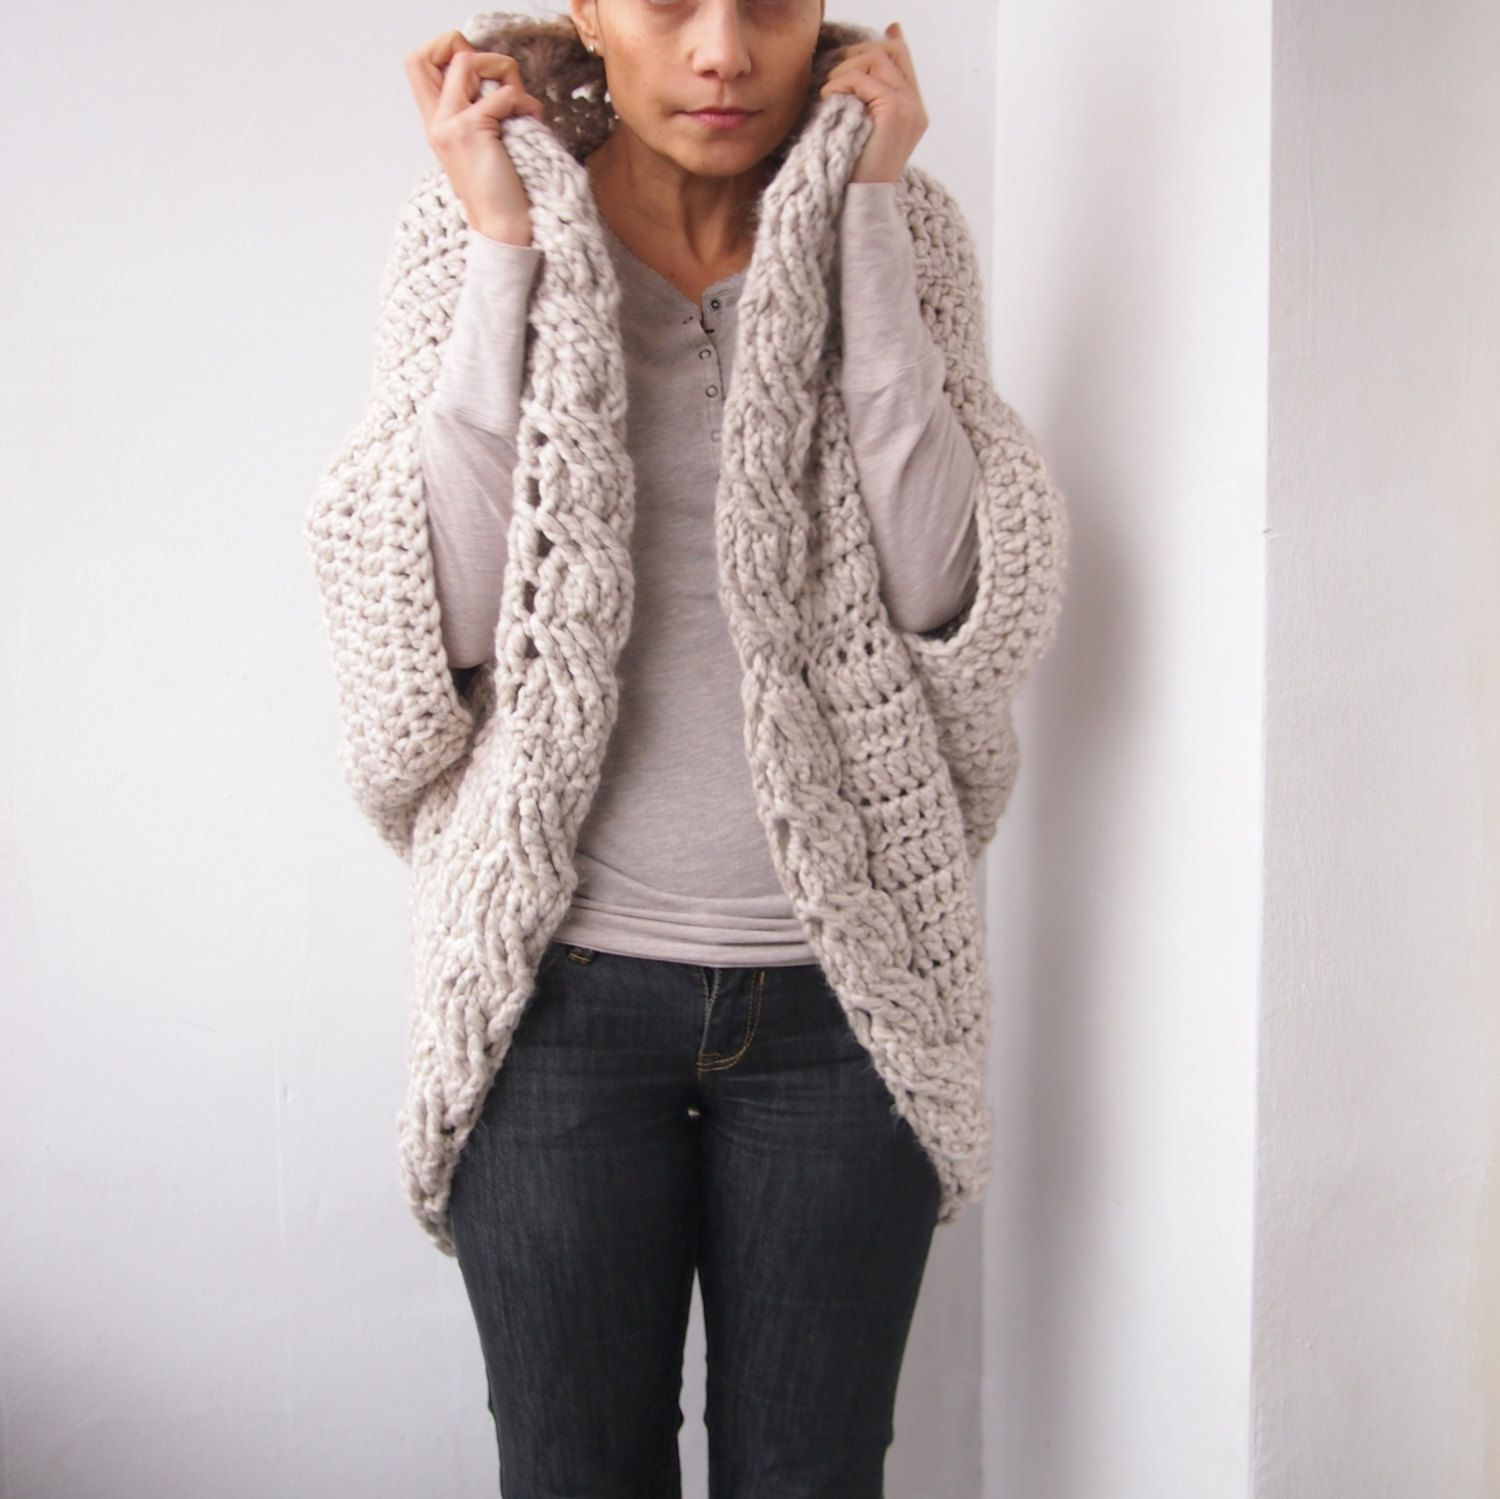 Crochet Pattern cable women cocoon shrug bulky coat cardigan, plus ...